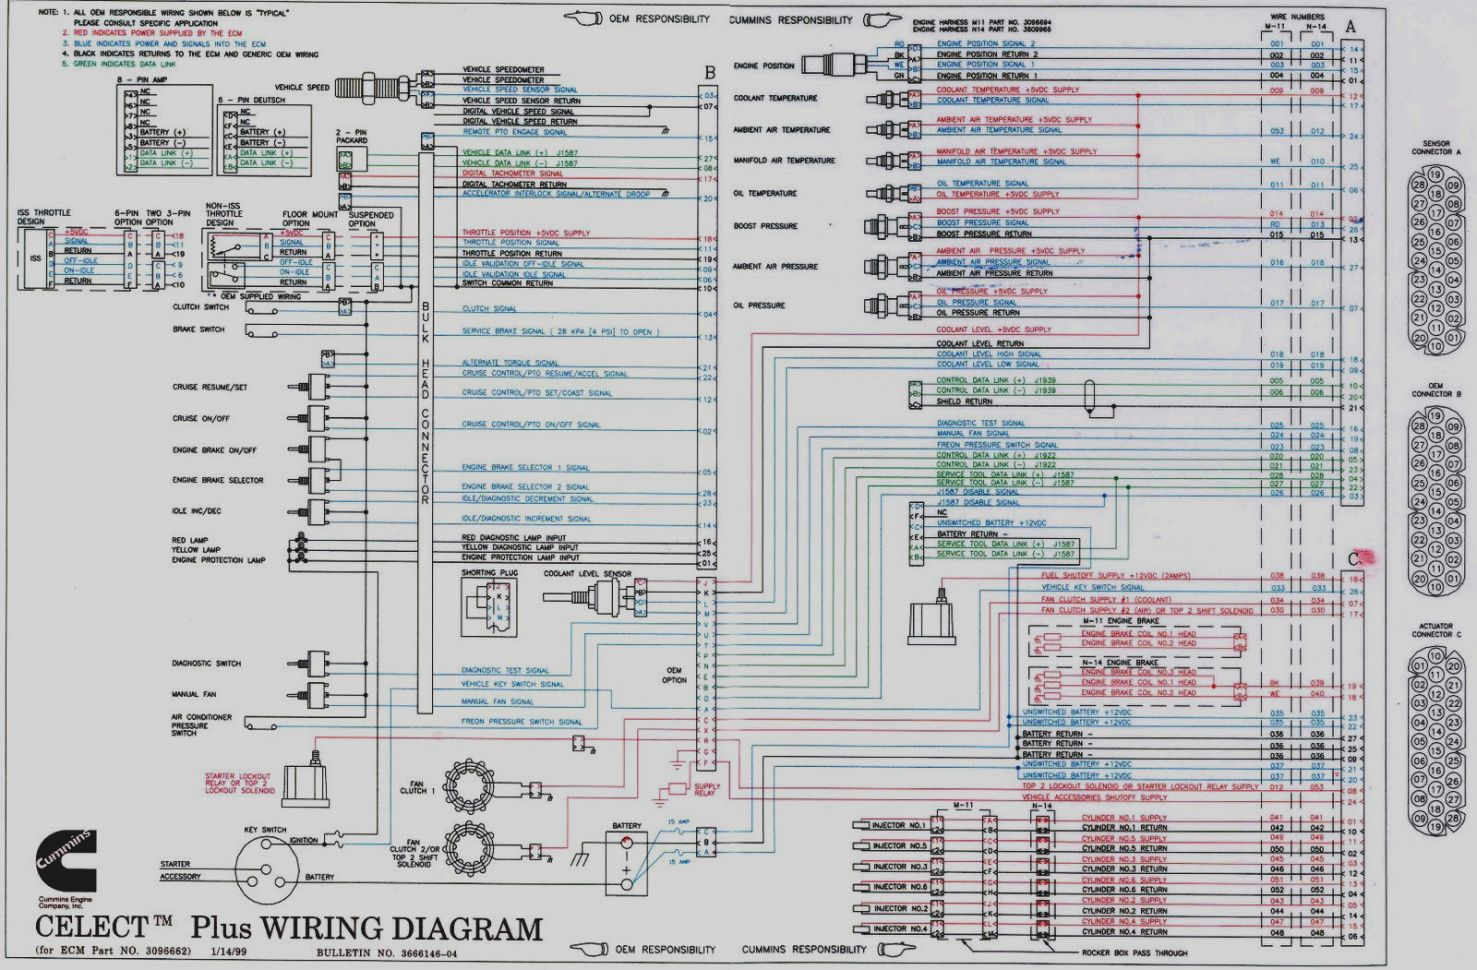 awesome cummins n14 celect plus wiring diagram freightliner columbia cummins n14 celect wiring diagram awesome cummins [ 1477 x 970 Pixel ]